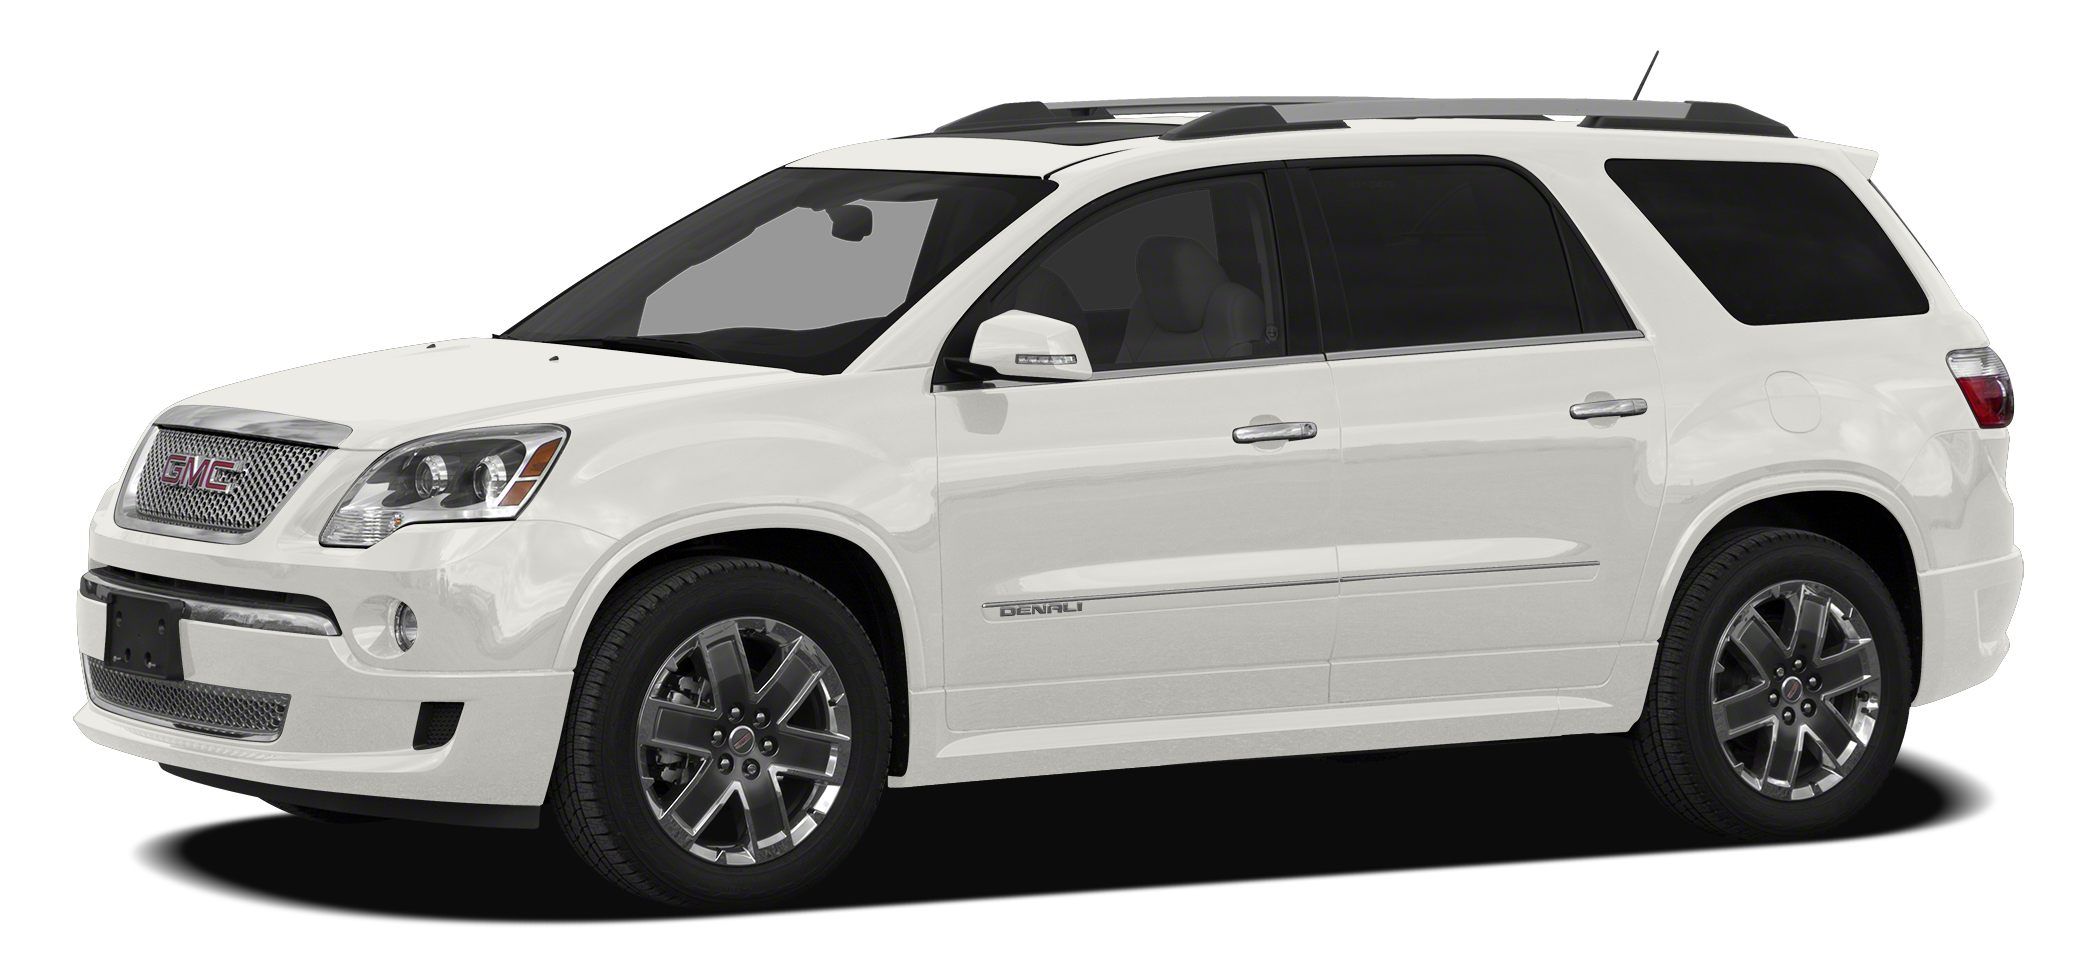 2012 GMC Acadia Denali 2012 GMC Acadia Denali Summit White with charcoal leather interior This On